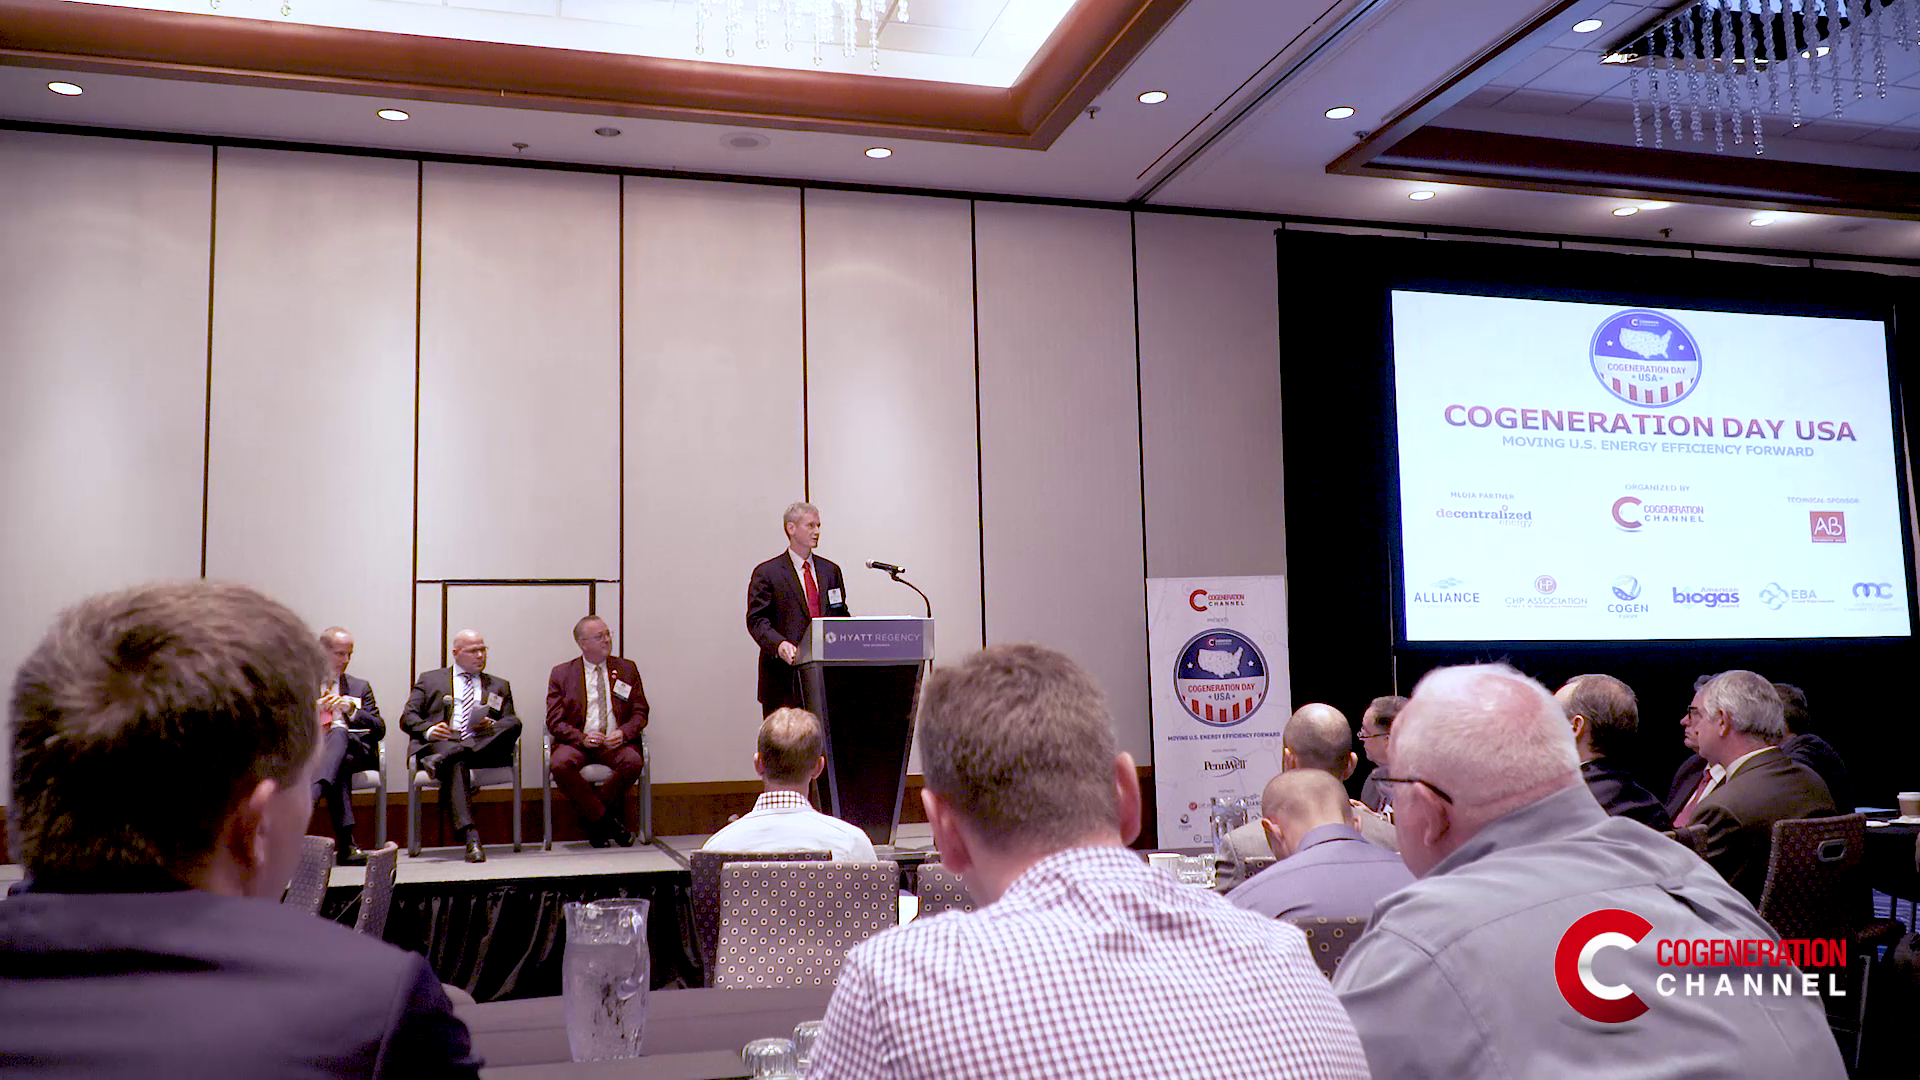 Cogeneration Day USA: a successful first edition